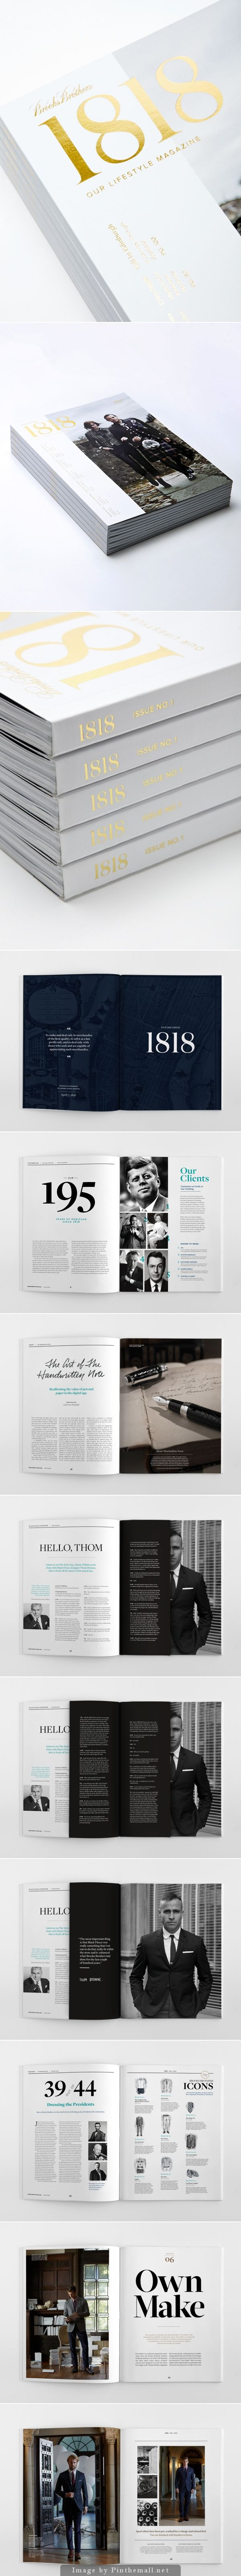 1818, BROOKS BROTHERS LIFESTYLE MAGAZINE. DESIGN BY Stephanie Toole - created via http://pinthemall.net